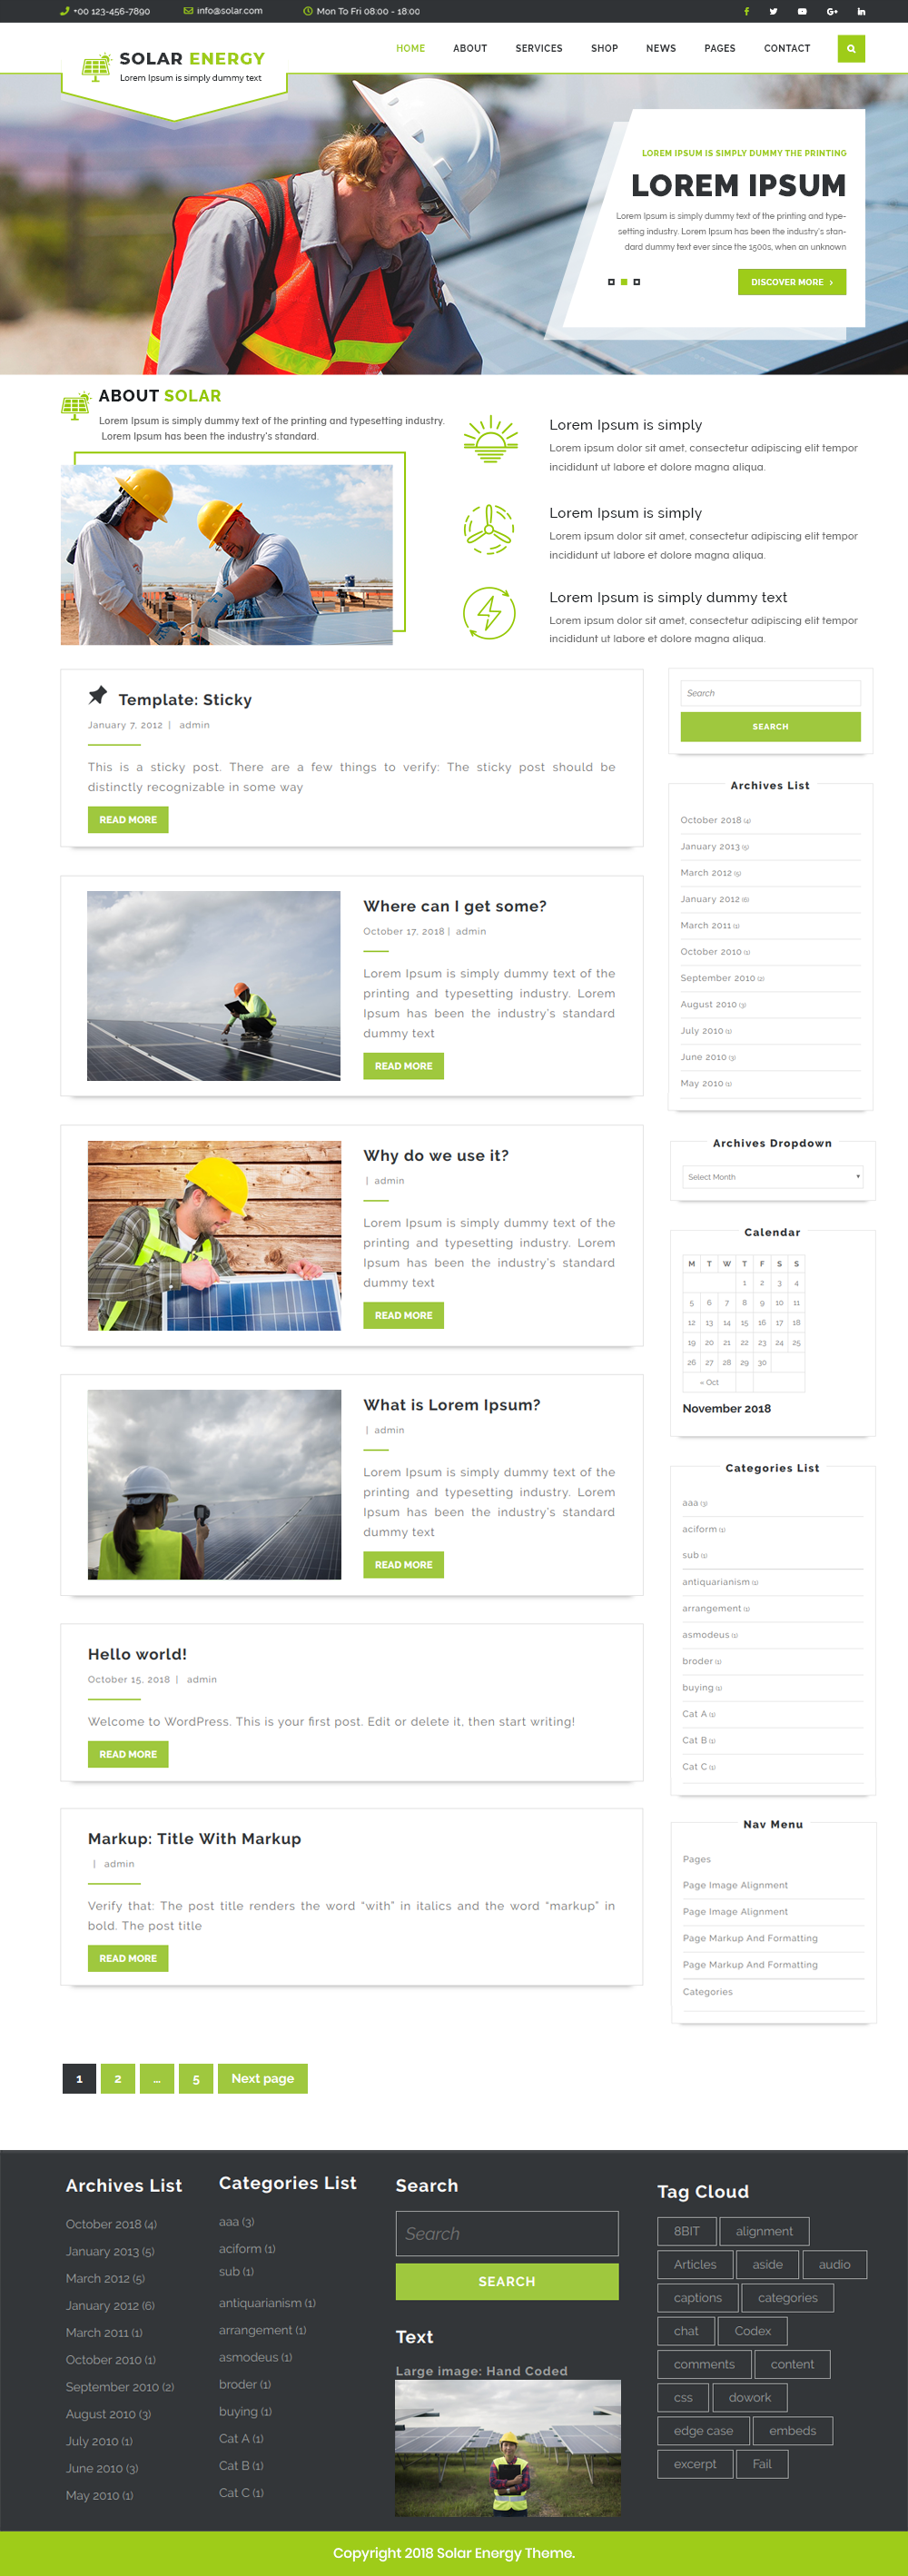 Free Solar Energy WordPress Theme